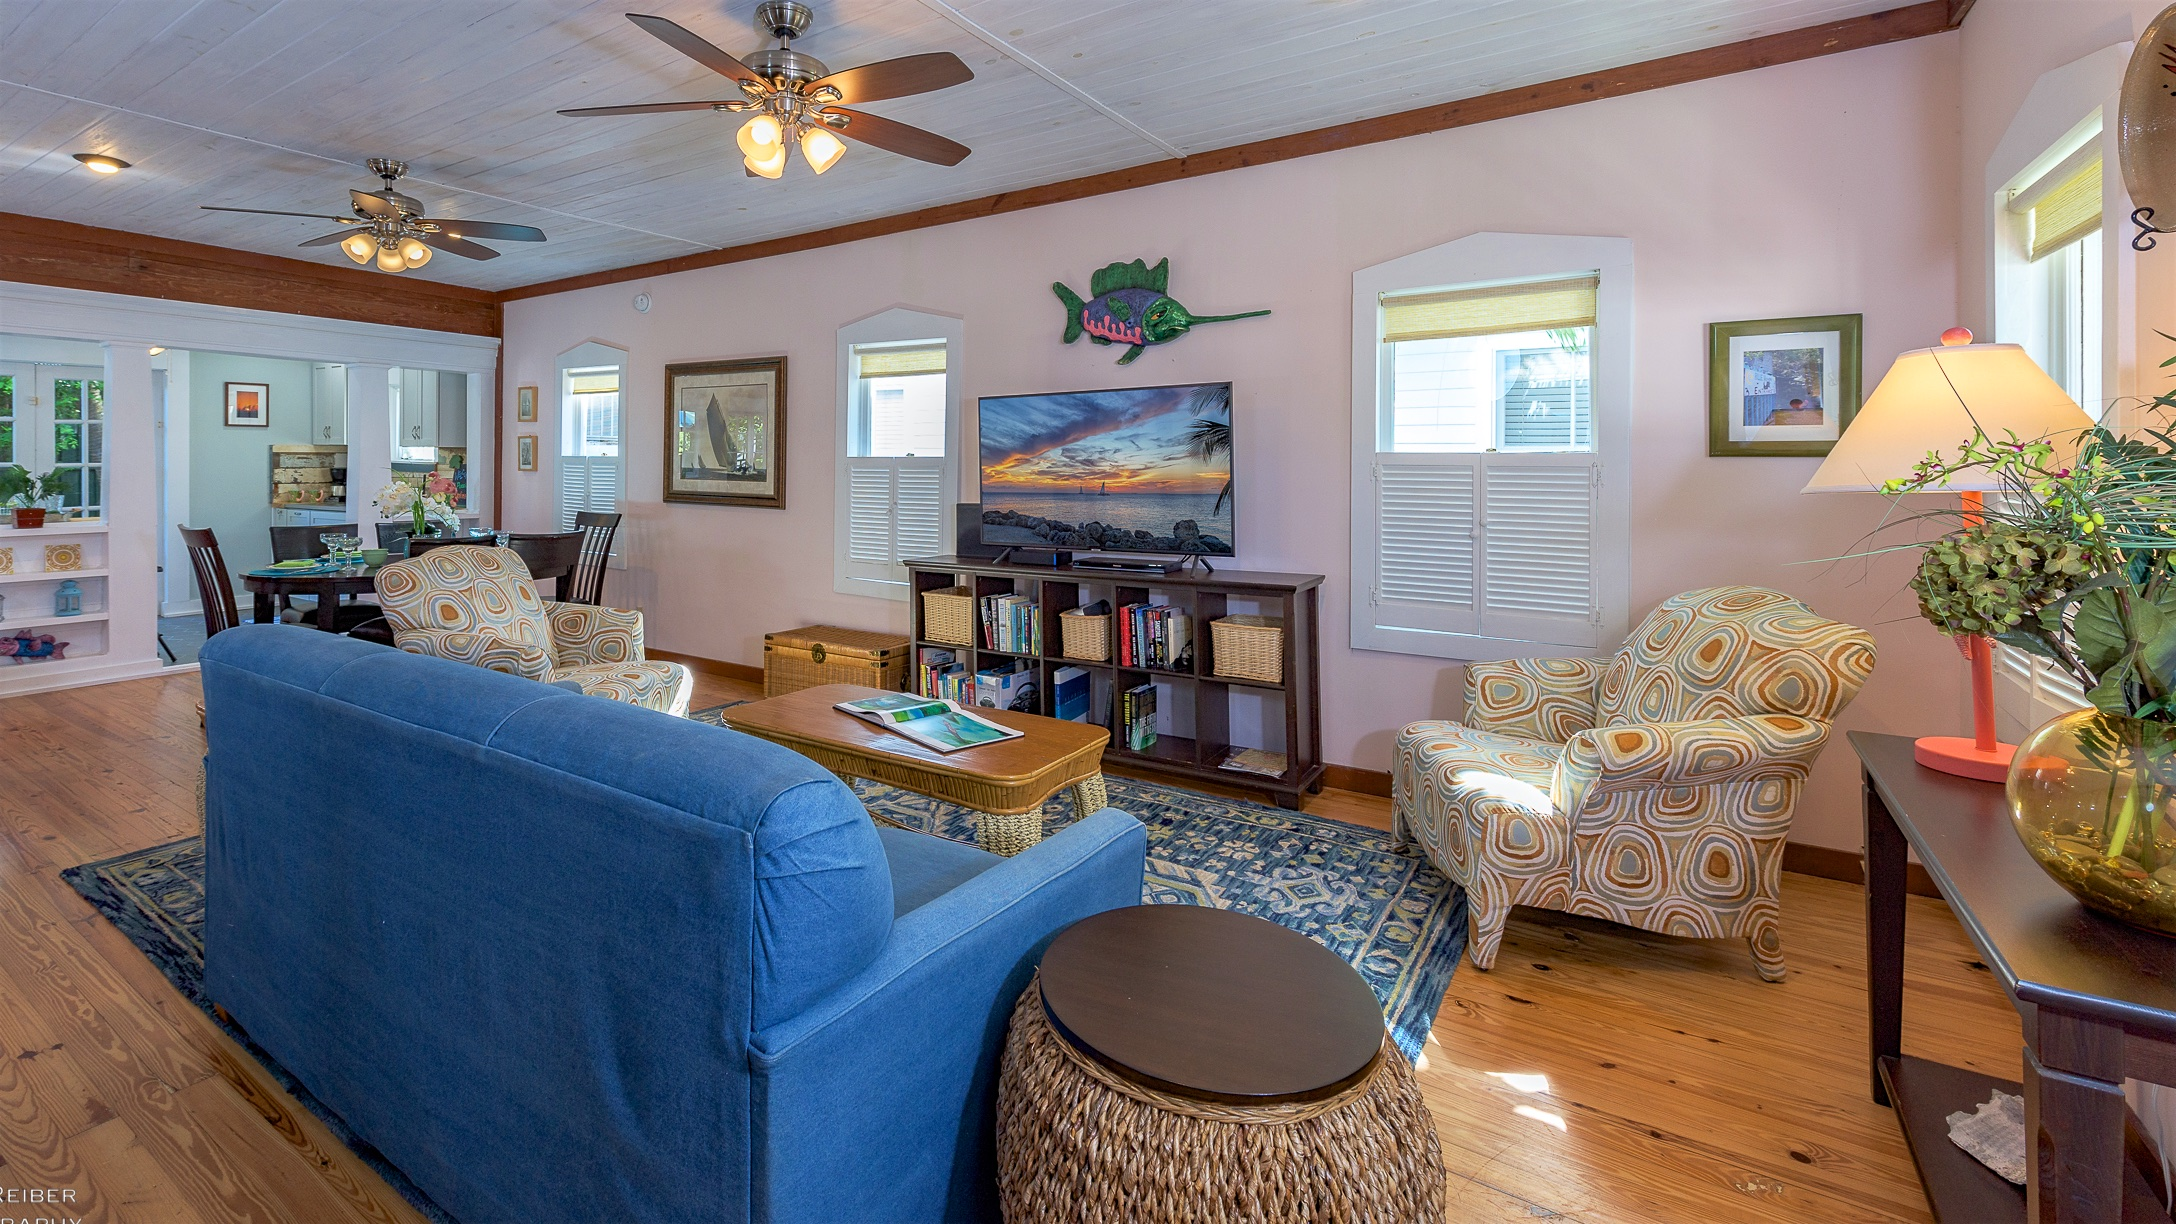 Enjoyable Puerta Coralina Vacation Rental In Key West Fl Last Key Ocoug Best Dining Table And Chair Ideas Images Ocougorg